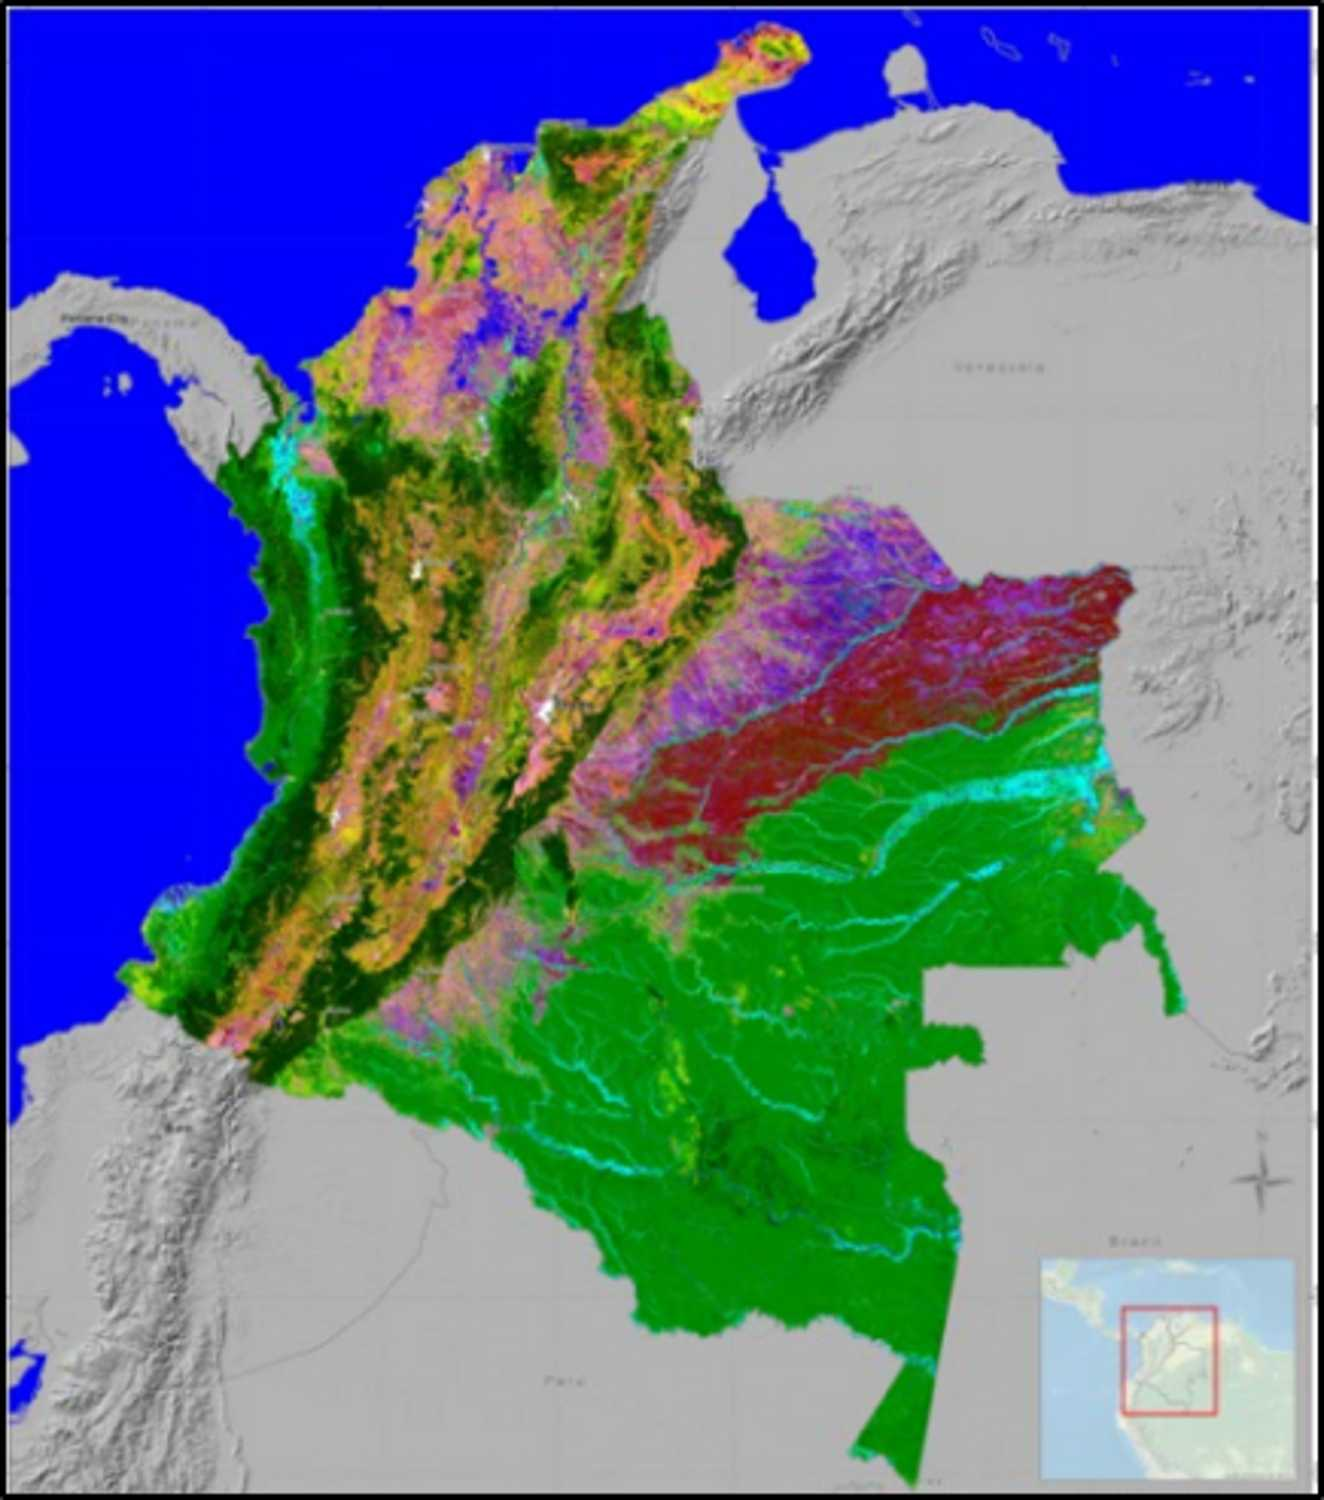 Baseline map: Land cover map of Colombia